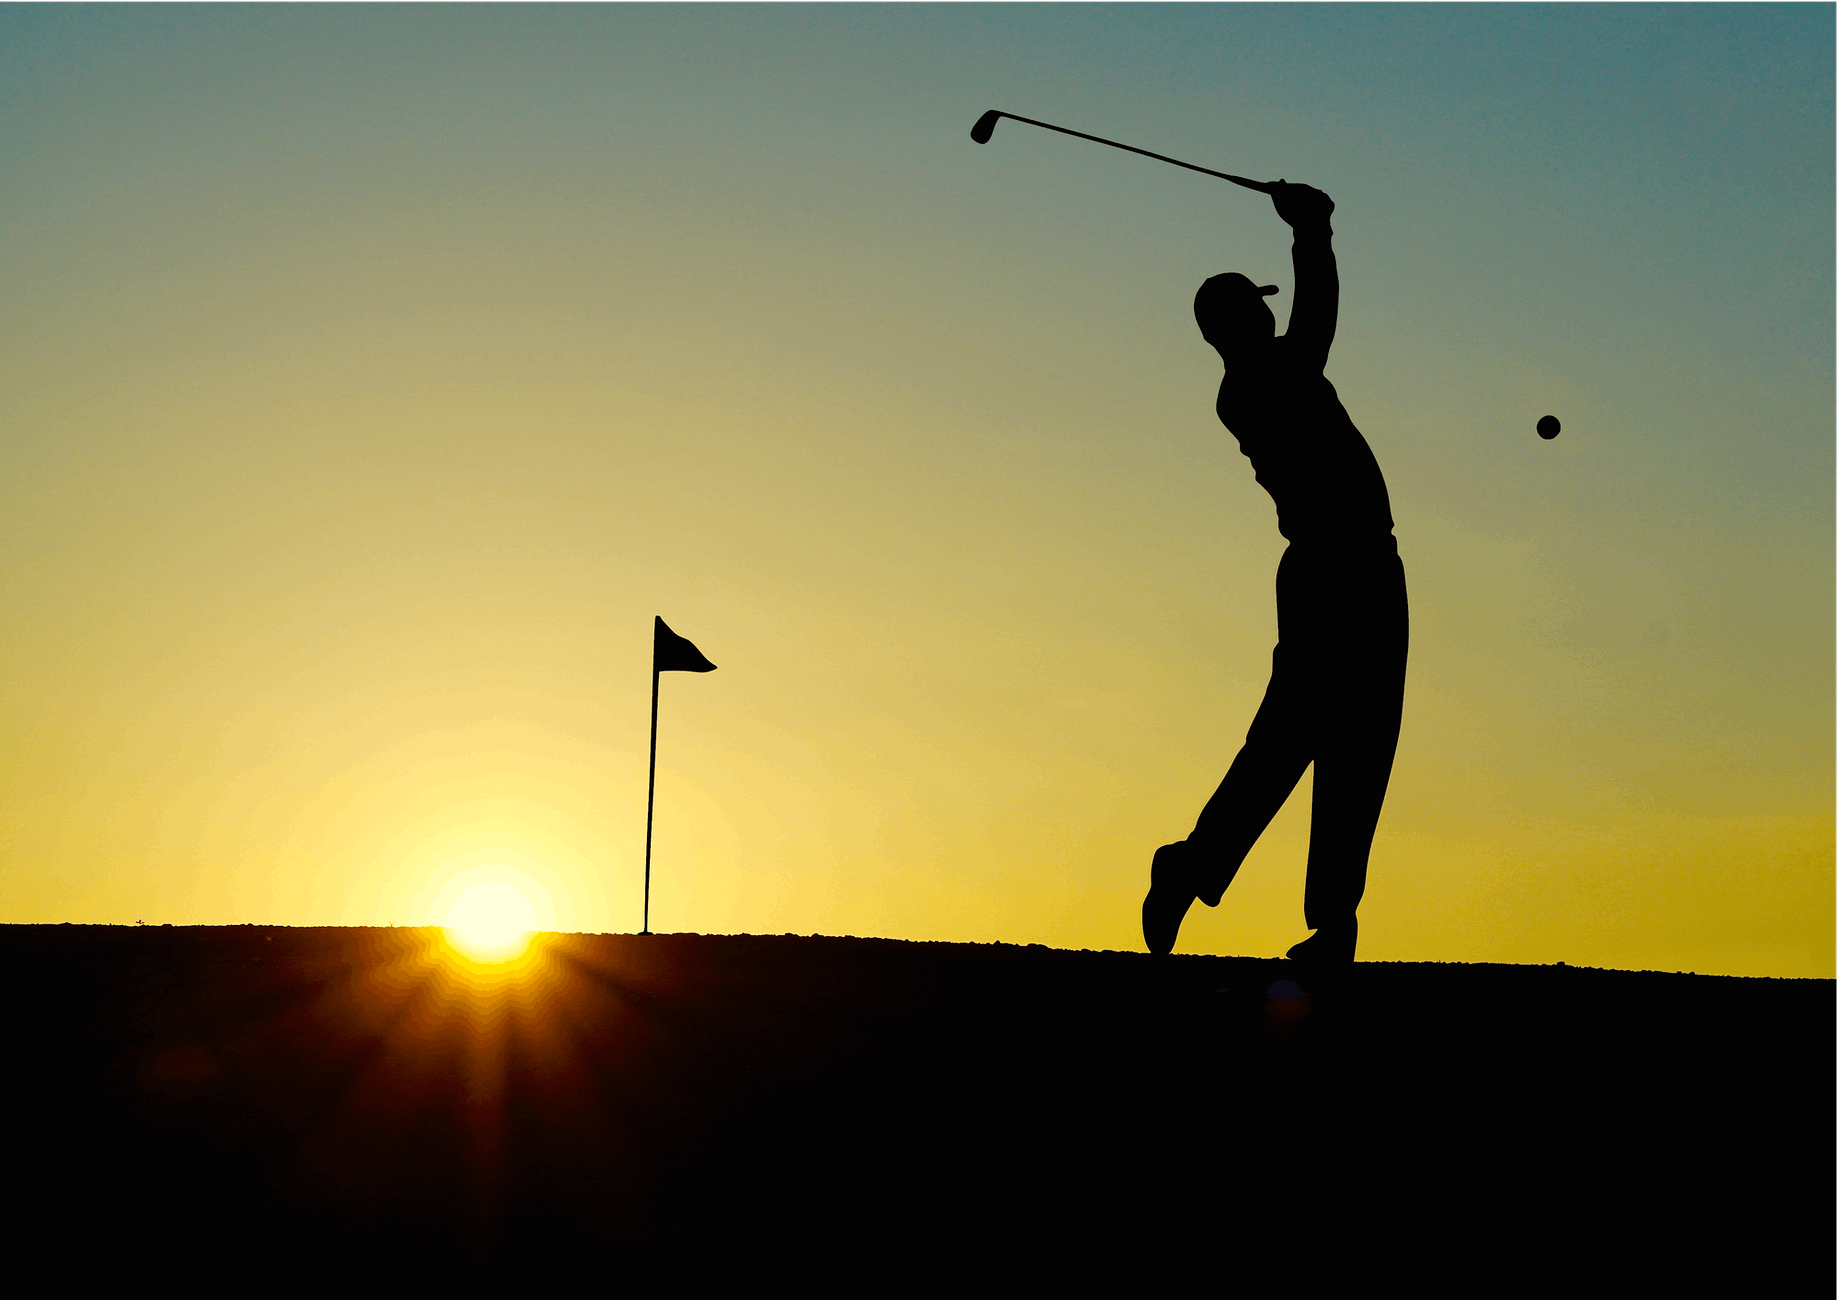 silhouette of man playing golf during sunset niche tourism